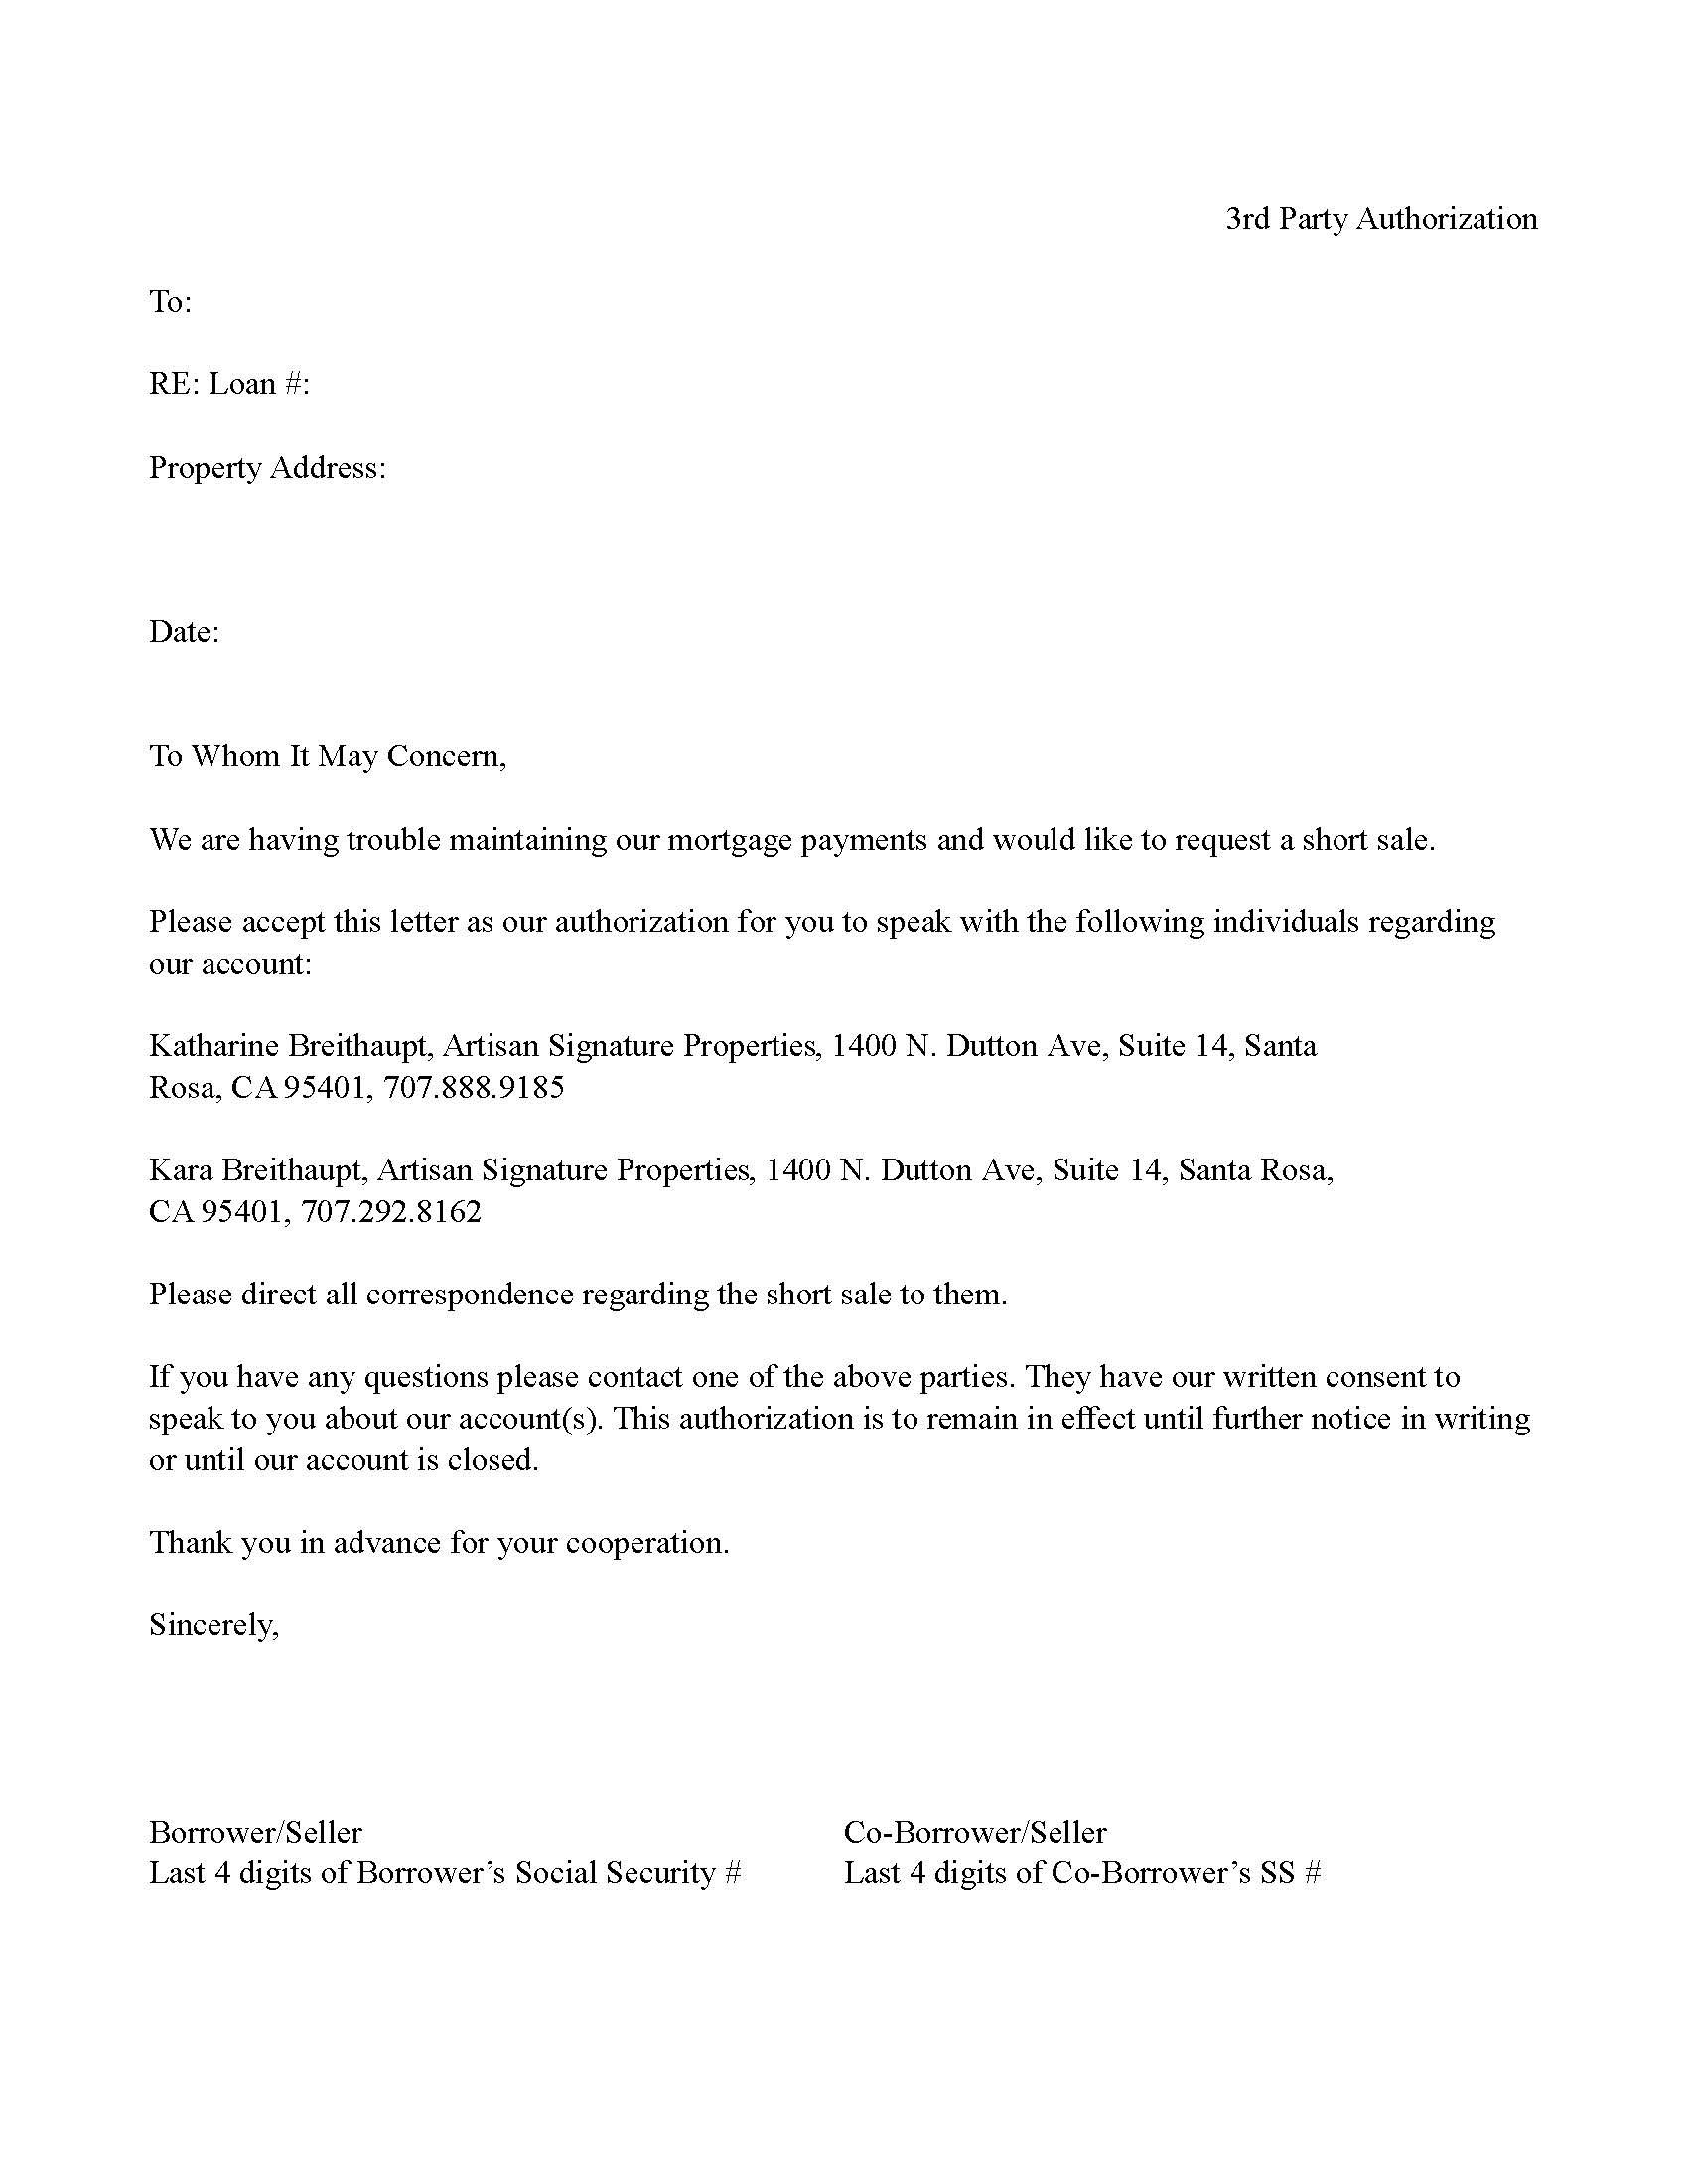 Bank party letter authorization short sale template for two mla bank party letter authorization short sale template for two mla format example best collection thecheapjerseys Choice Image